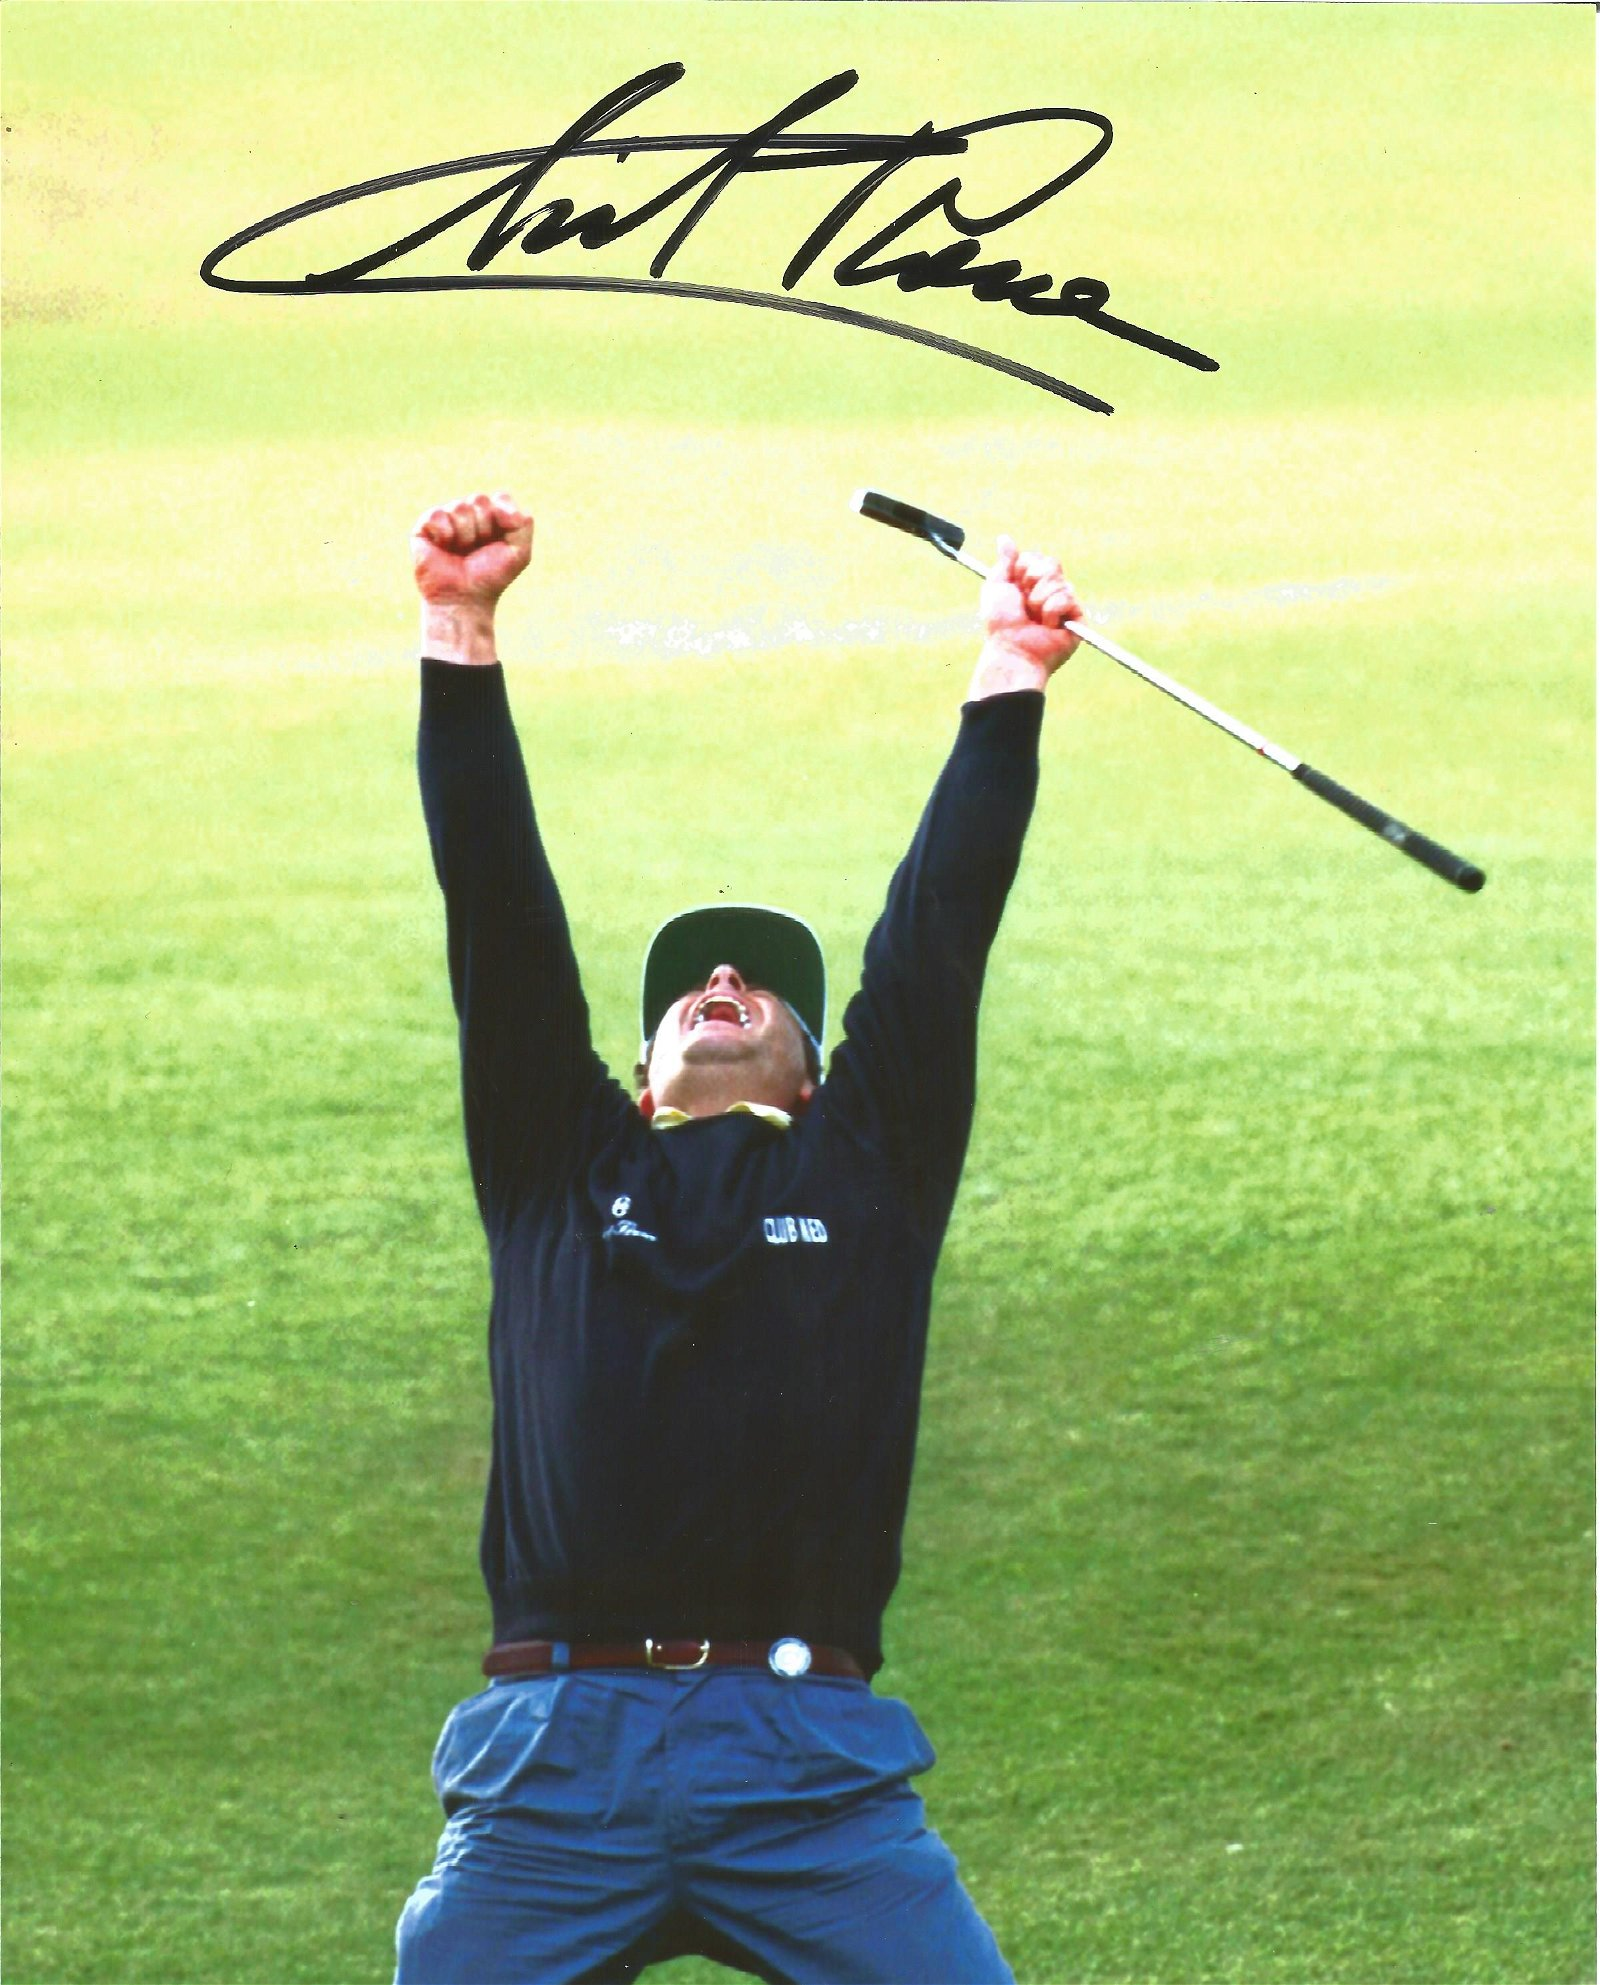 Constantino Rocca Signed 1995 Ryder Cup Golf 8x10 Photo